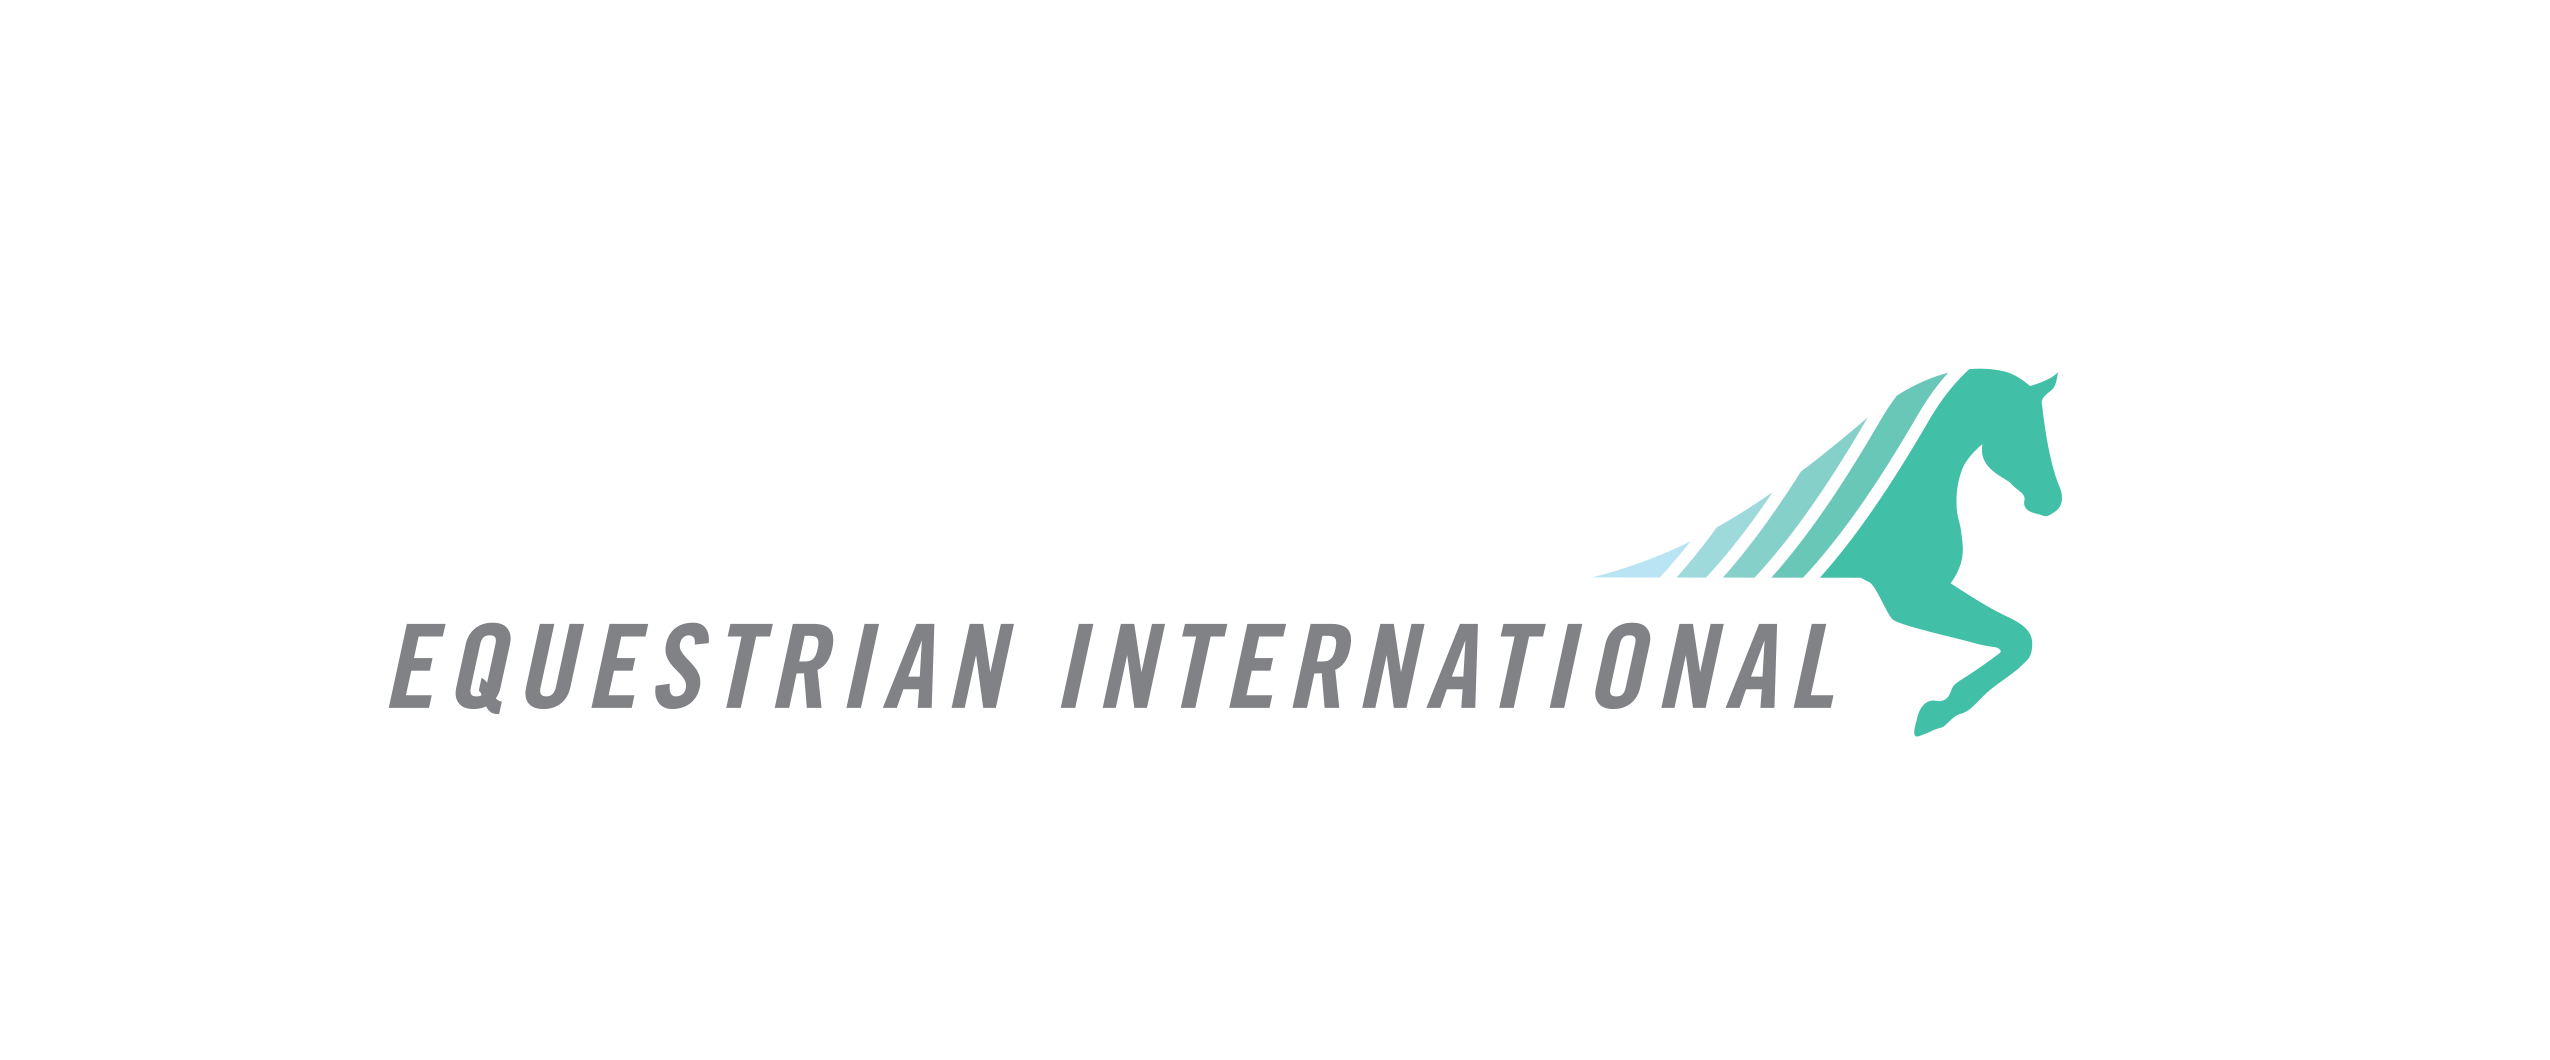 Equestrian International